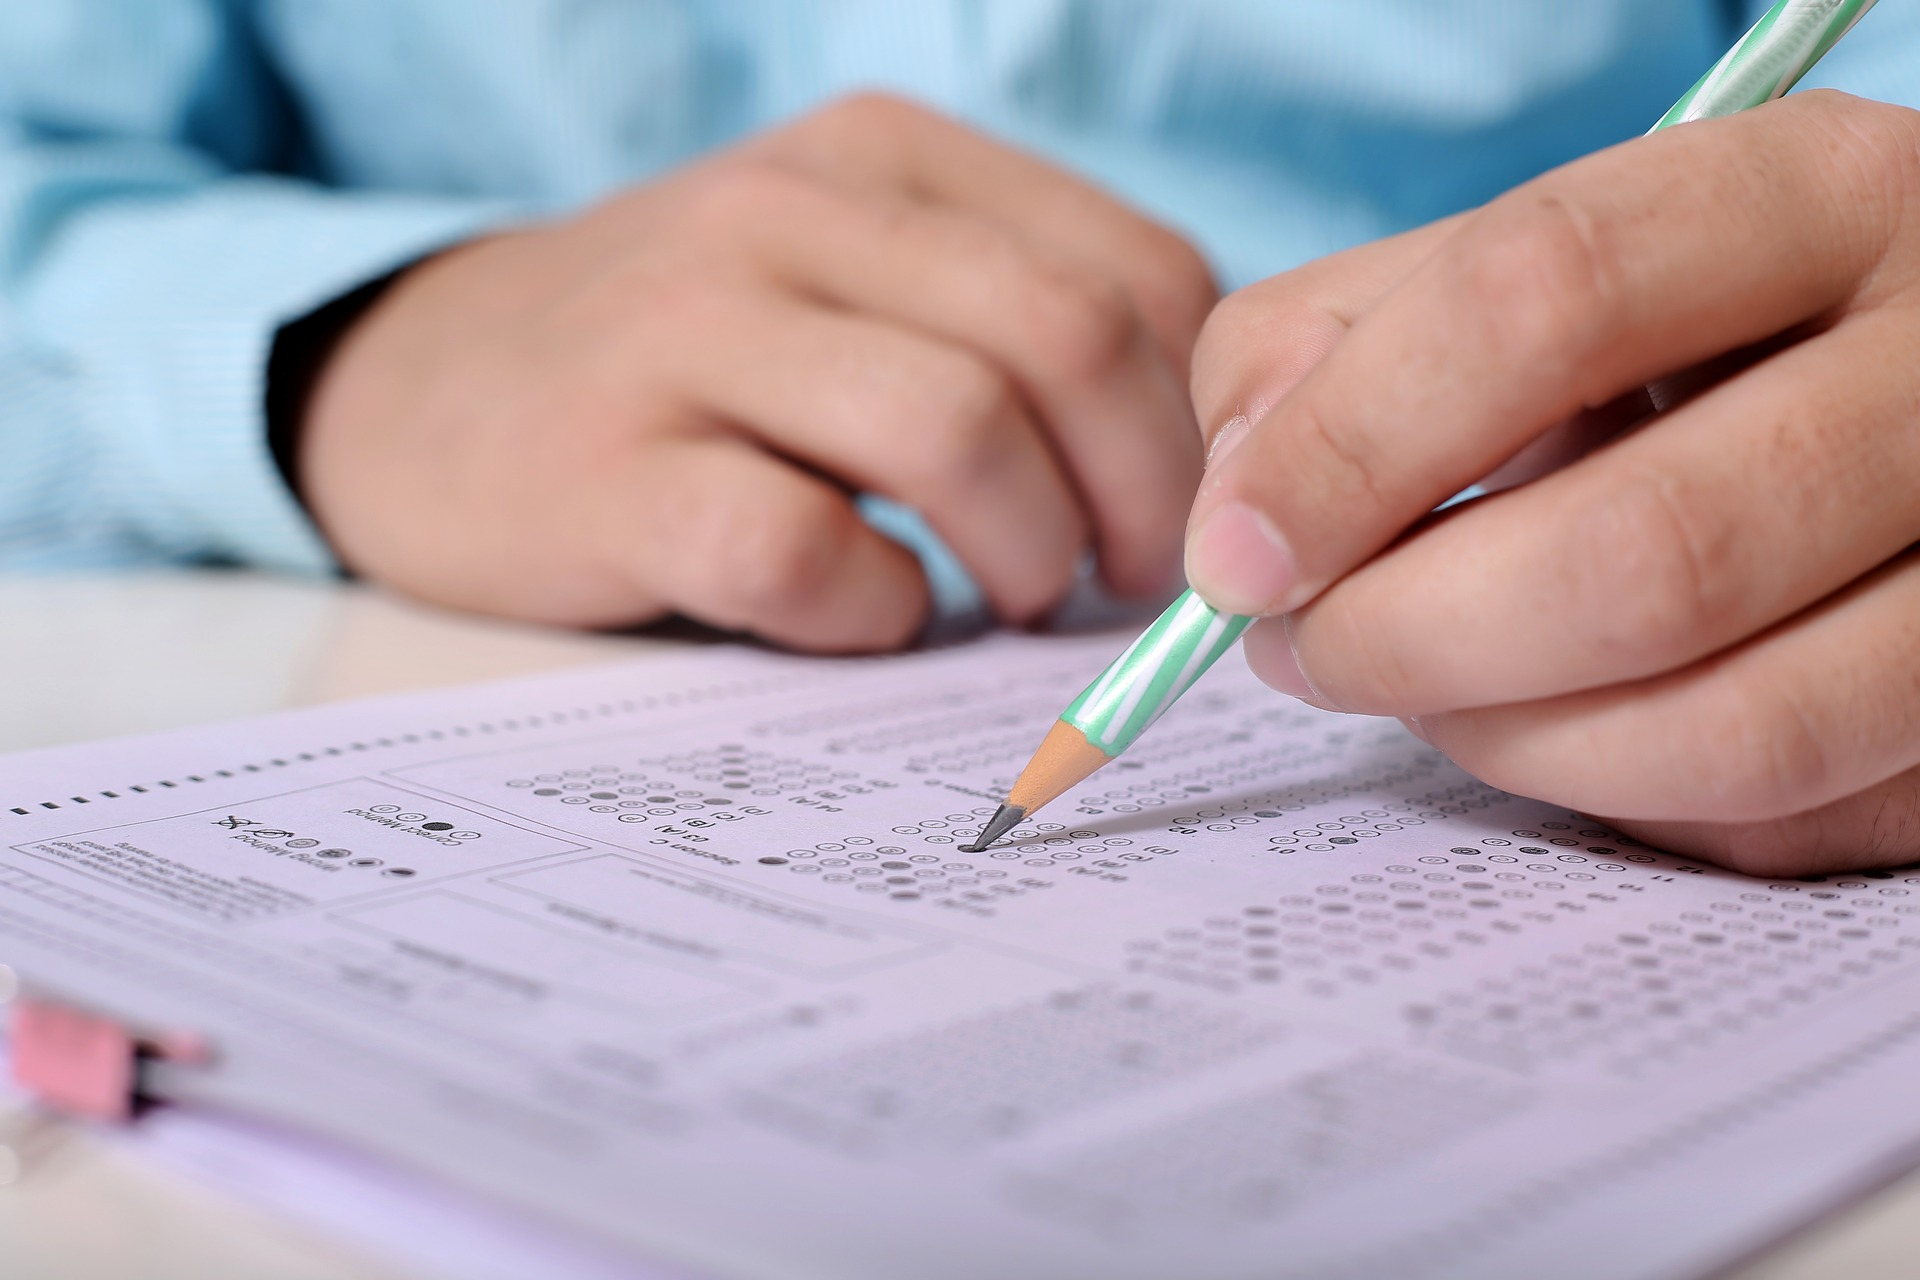 student taking a scantron exam in school